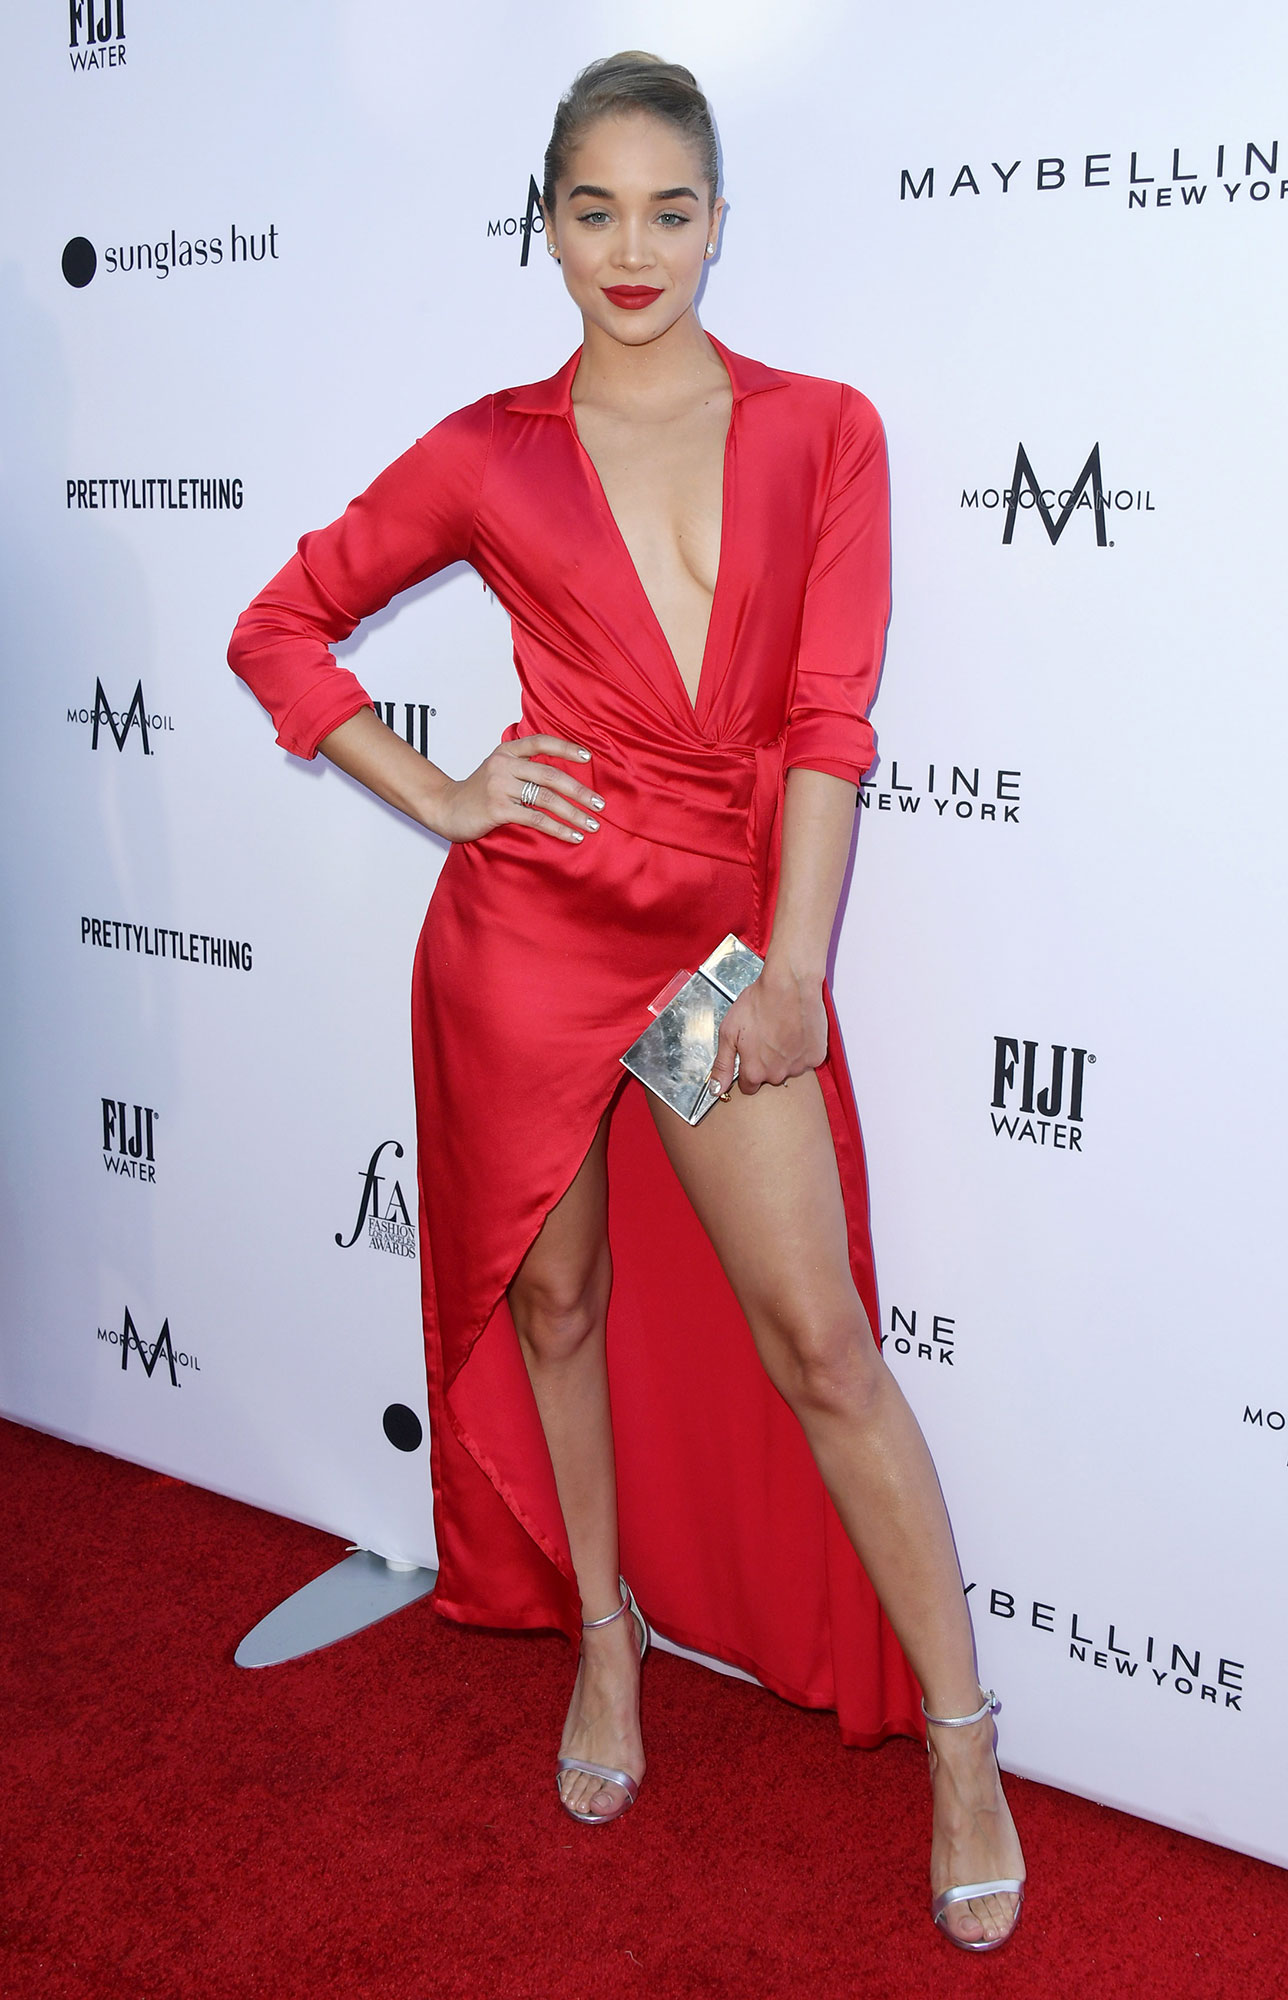 Stars Brought Their Style A-Game to the Daily Front Row Fashion Awards - Matching her lip to her dress, the model rocked a dangerously high leg slit and a bold shiny hue.